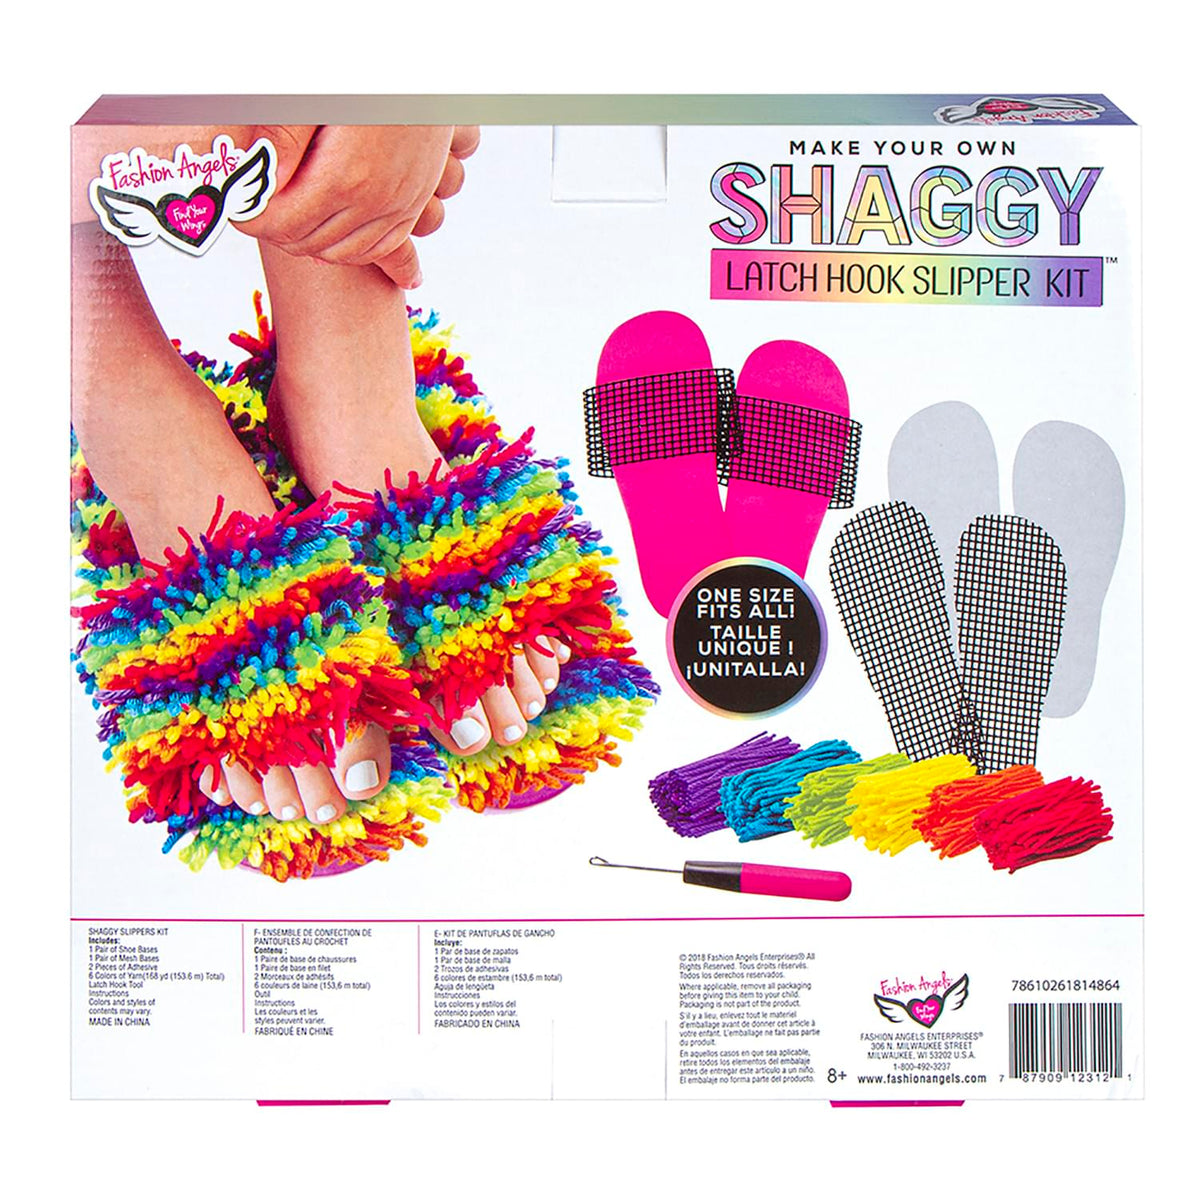 Fashion Angels Latch Hook Slipper Design Kit